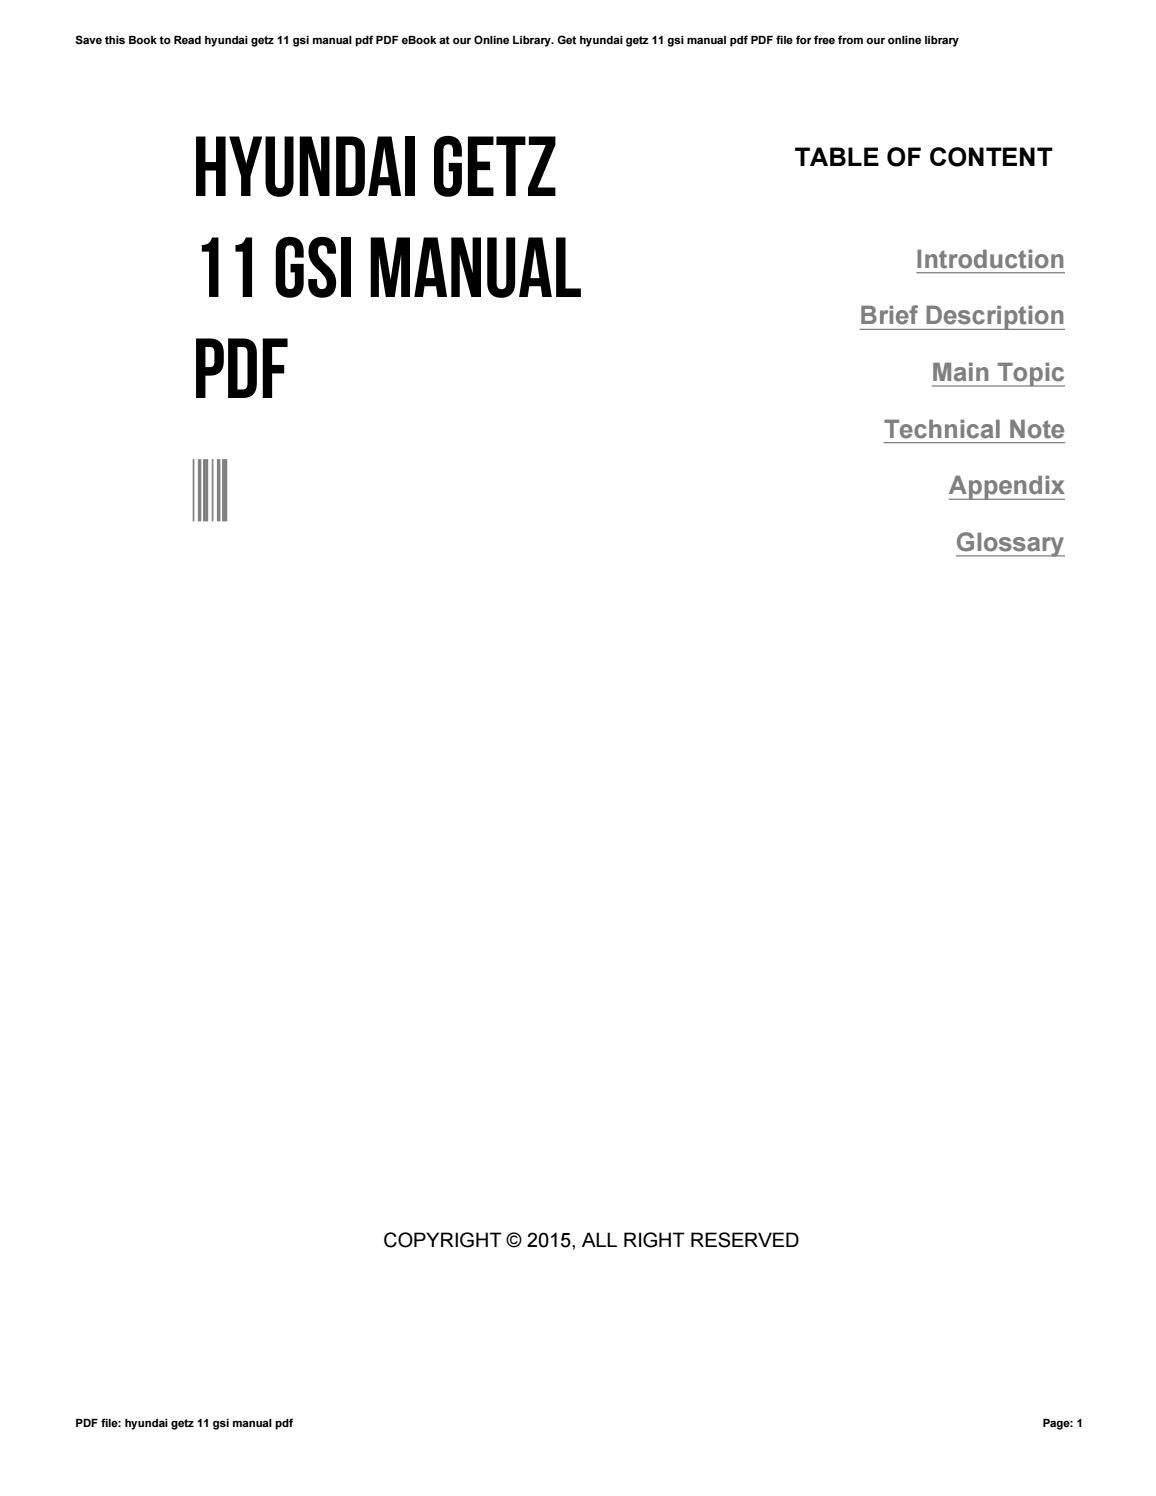 Hyundai getz manual book array hyundai getz 11 gsi manual pdf by morriesworld5 issuu rh issuu fandeluxe Images